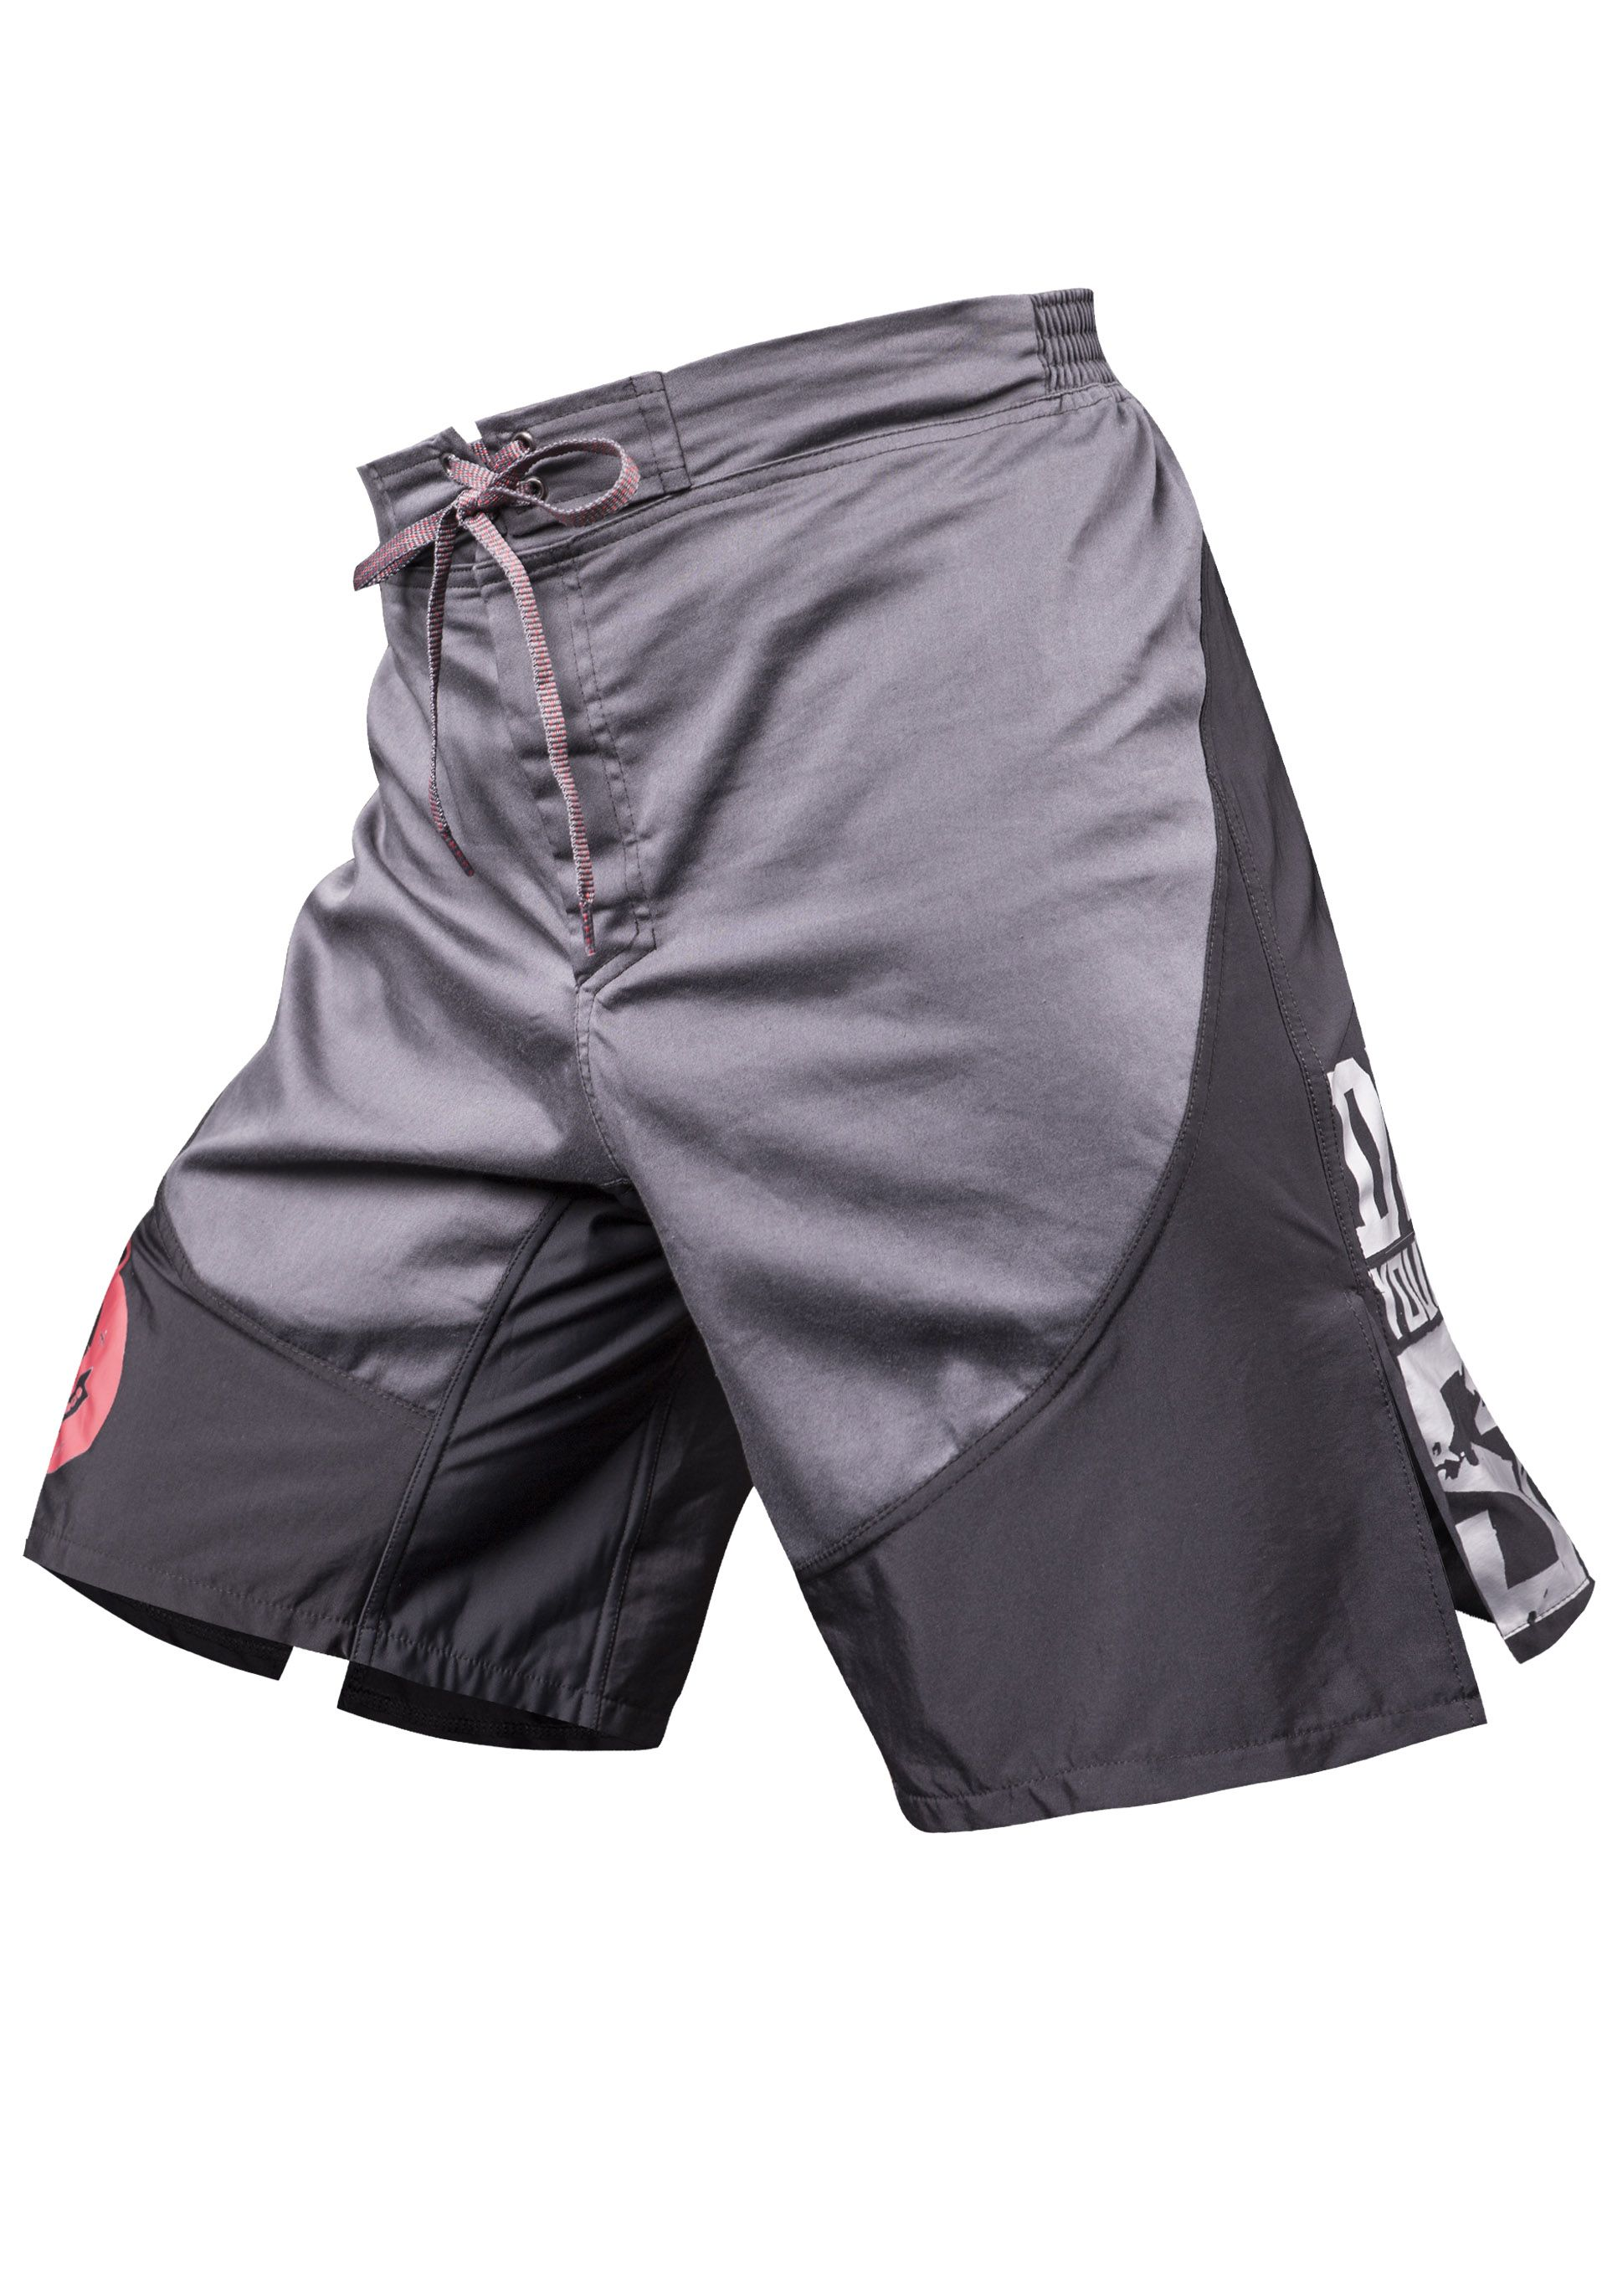 d6beb73910d Crossfit shorts for men! New brand for Crossfitters contact repinpeace.com